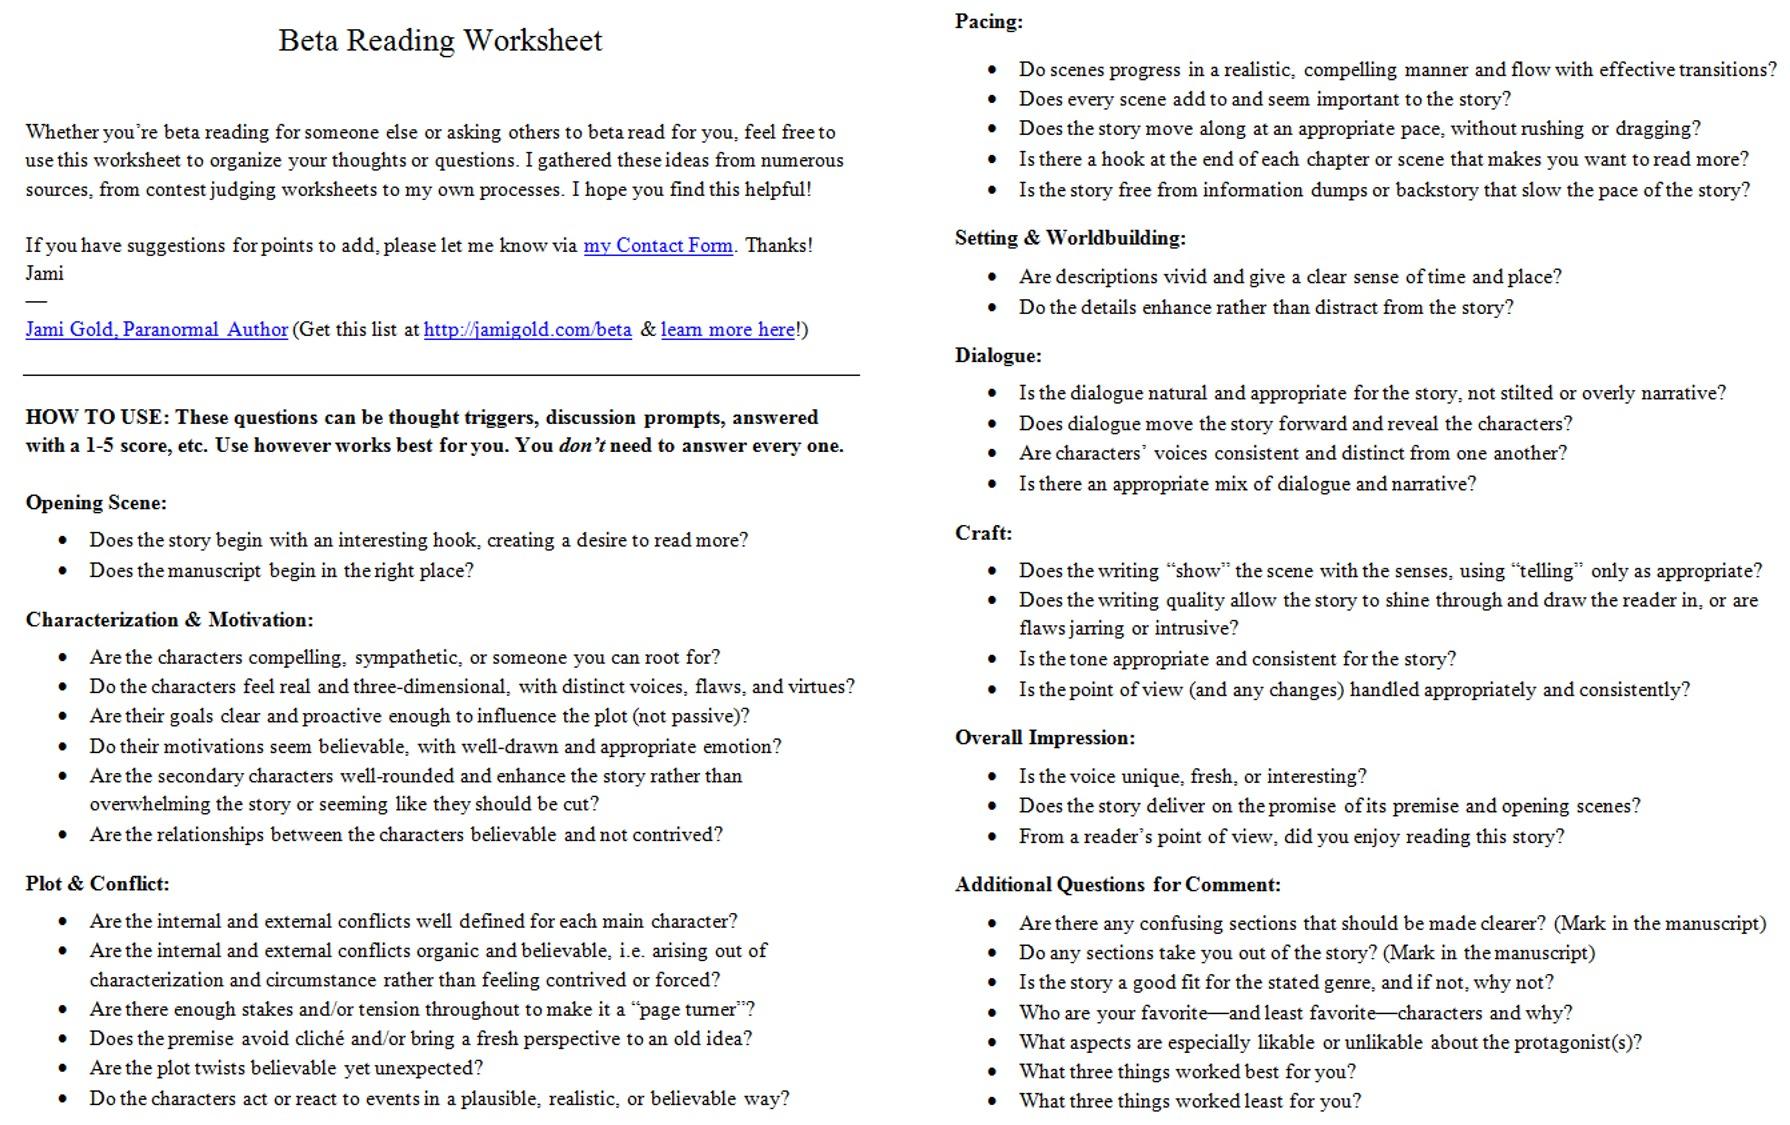 Weirdmailus  Stunning Worksheets For Writers  Jami Gold Paranormal Author With Gorgeous Screen Shot Of The Twopage Beta Reading Worksheet With Cute Earth Tilt Seasons Worksheet Also Math Number Line Worksheets In Addition Writing Equations In Slope Intercept Form Worksheets And Addition Free Worksheets As Well As Number Patterns Worksheets Nd Grade Additionally Geometry Worksheets And Answers From Jamigoldcom With Weirdmailus  Gorgeous Worksheets For Writers  Jami Gold Paranormal Author With Cute Screen Shot Of The Twopage Beta Reading Worksheet And Stunning Earth Tilt Seasons Worksheet Also Math Number Line Worksheets In Addition Writing Equations In Slope Intercept Form Worksheets From Jamigoldcom